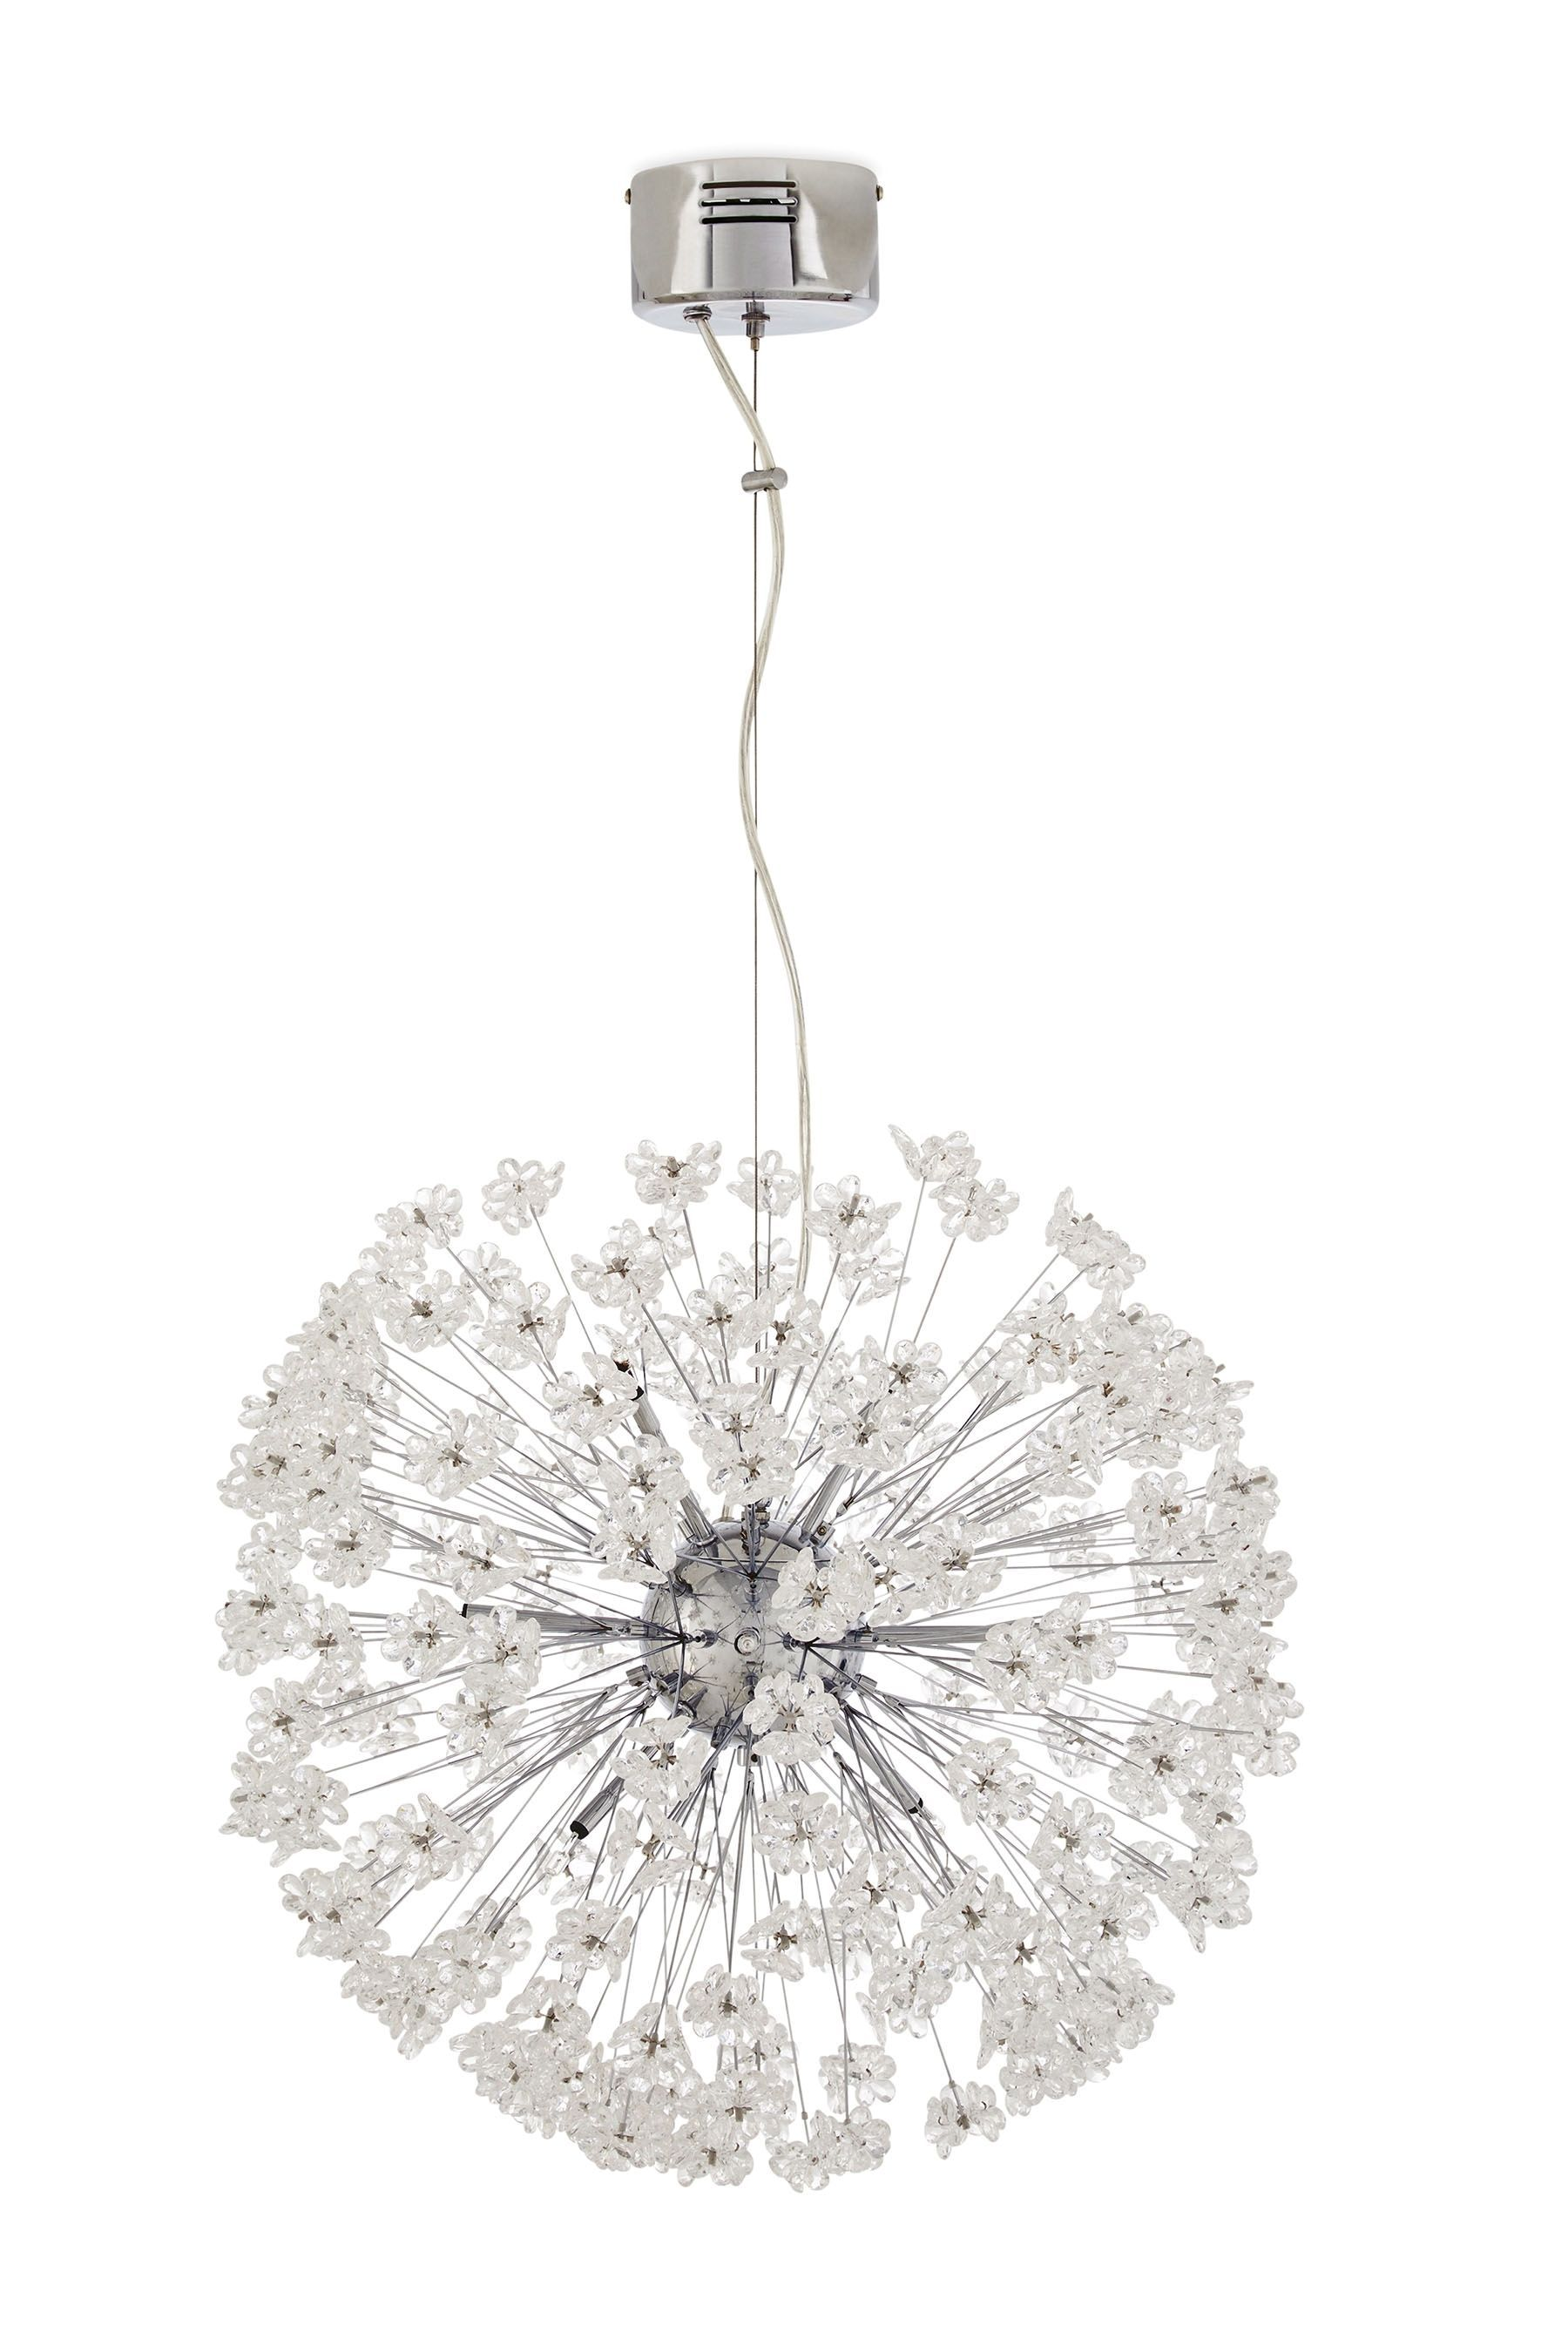 Buy floral spray 8 light chrome pendant from the next uk online shop gorgeous chandeliers pendants and flush lighting for an elegant and a soothing home setting next day delivery and free returns available arubaitofo Choice Image